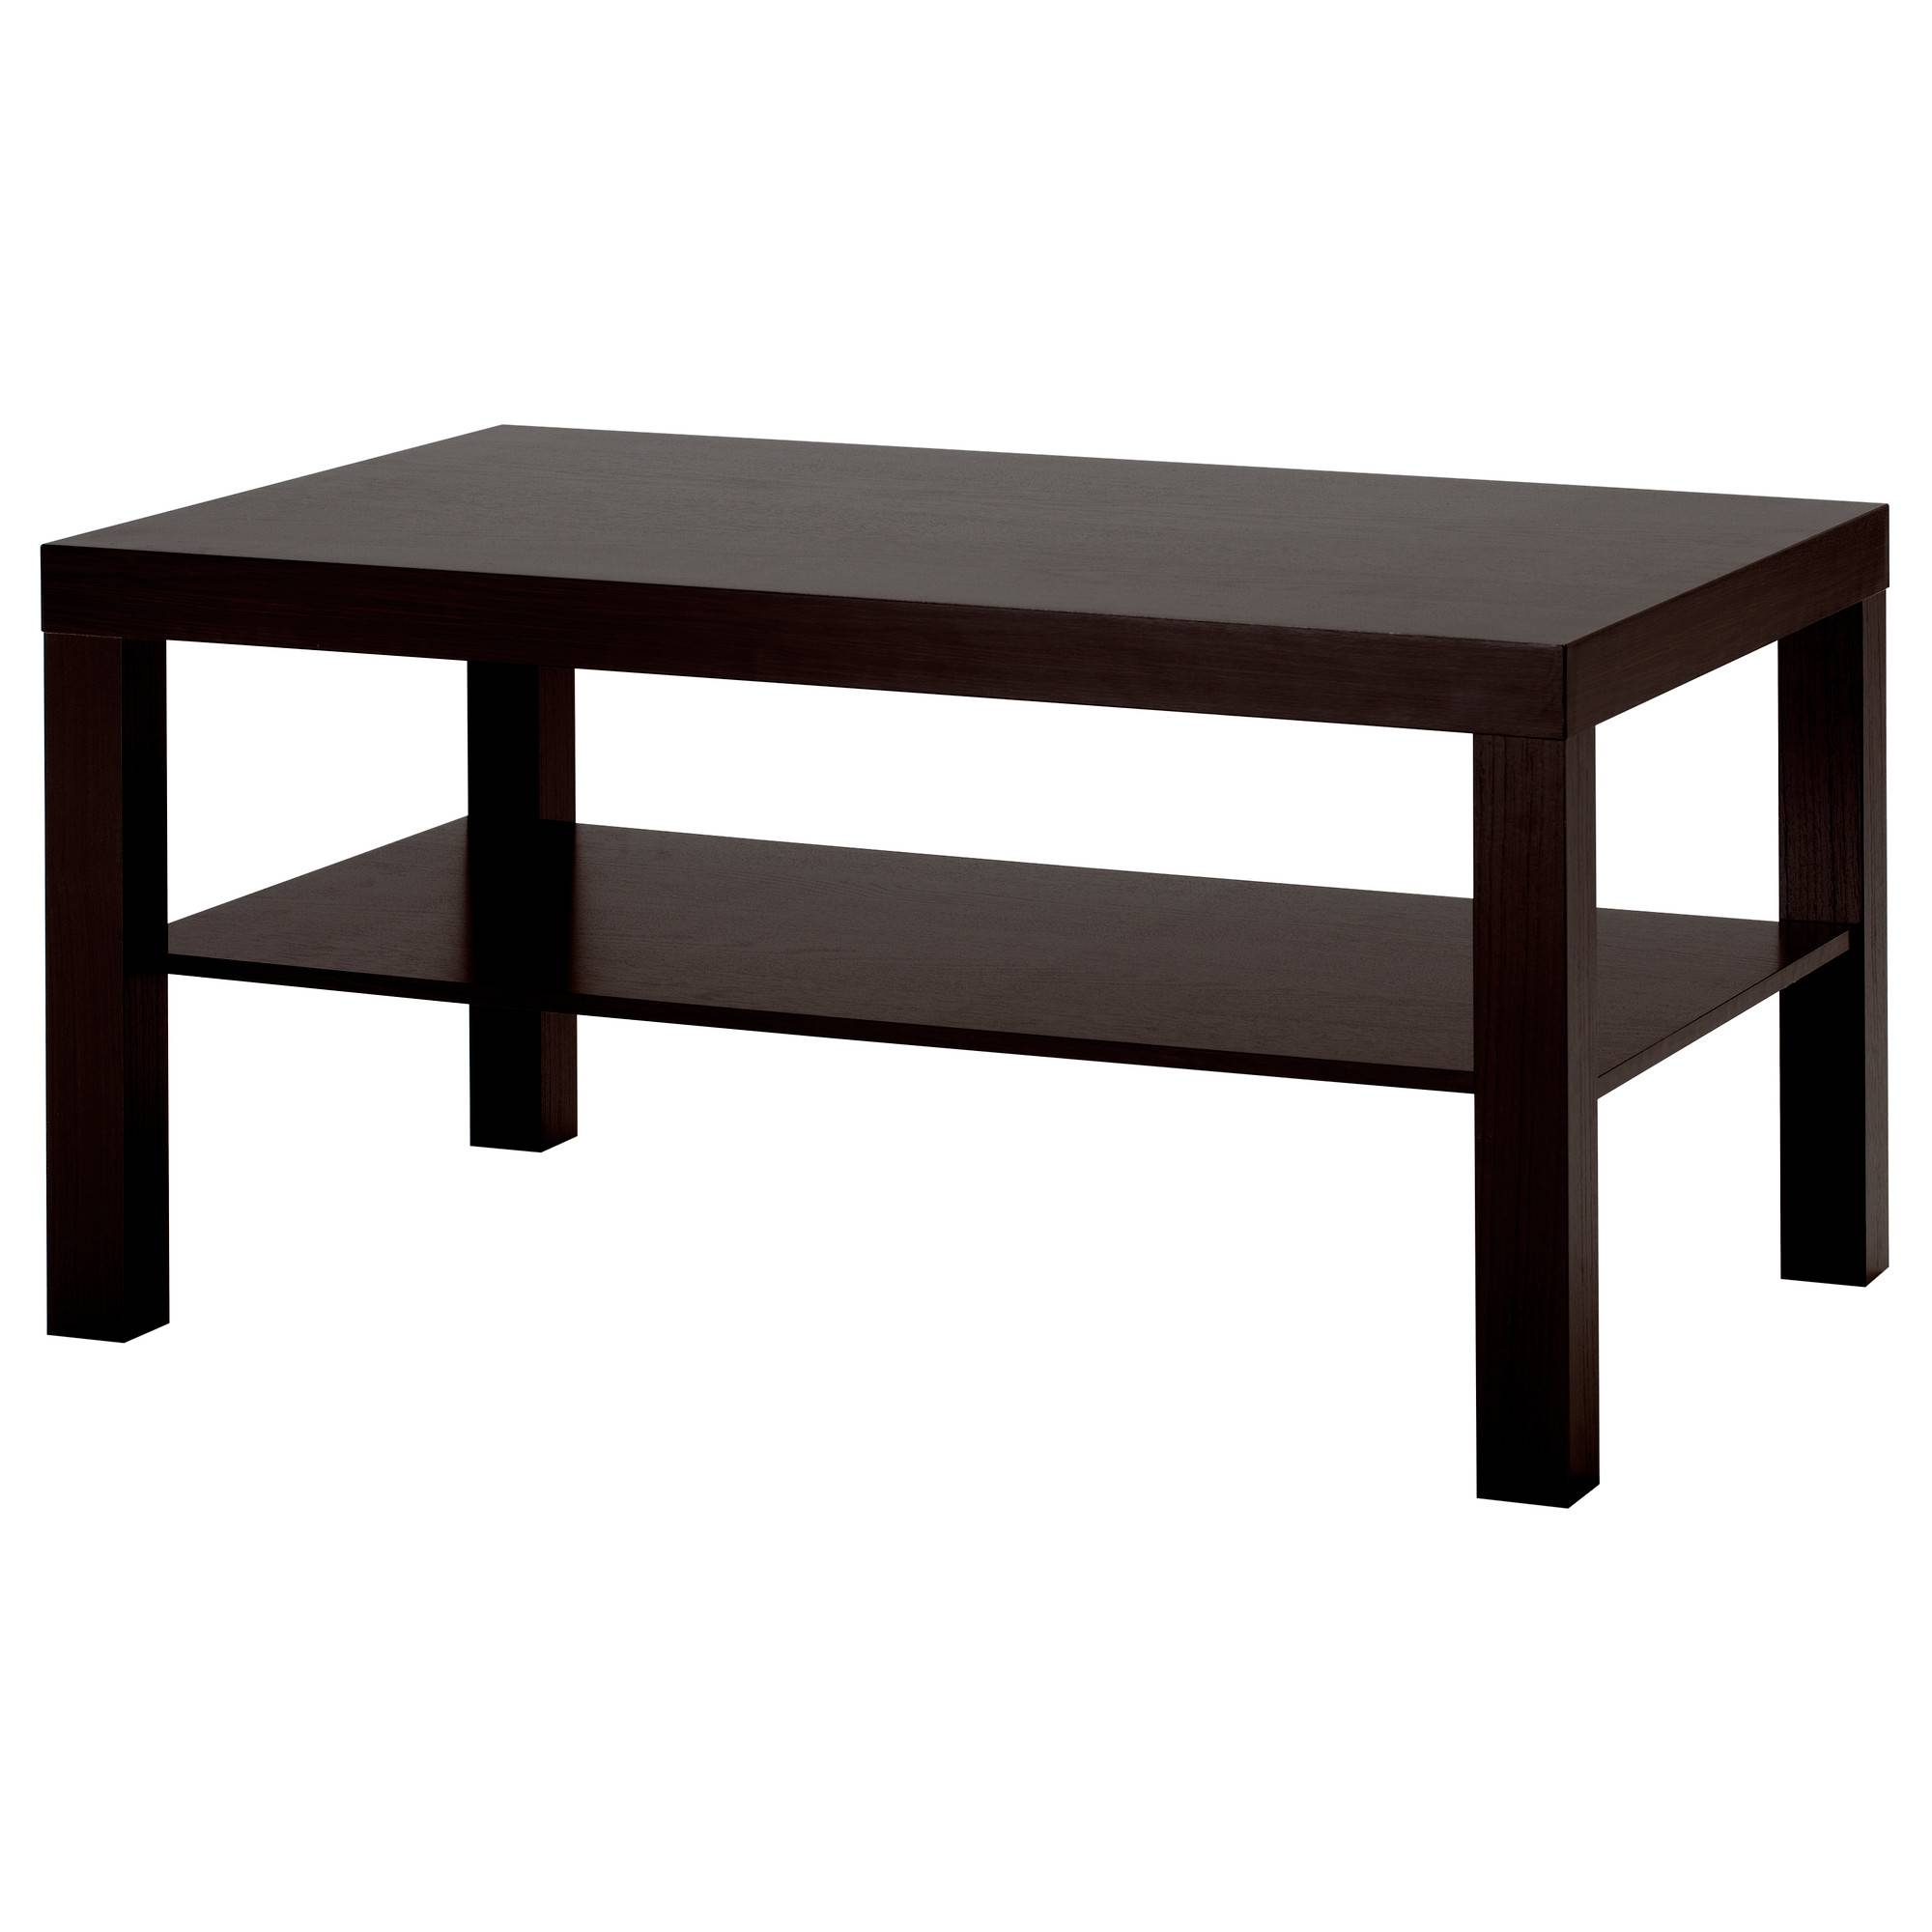 Coffee Tables & Console Tables - Ikea intended for Low Rectangular Coffee Tables (Image 7 of 30)